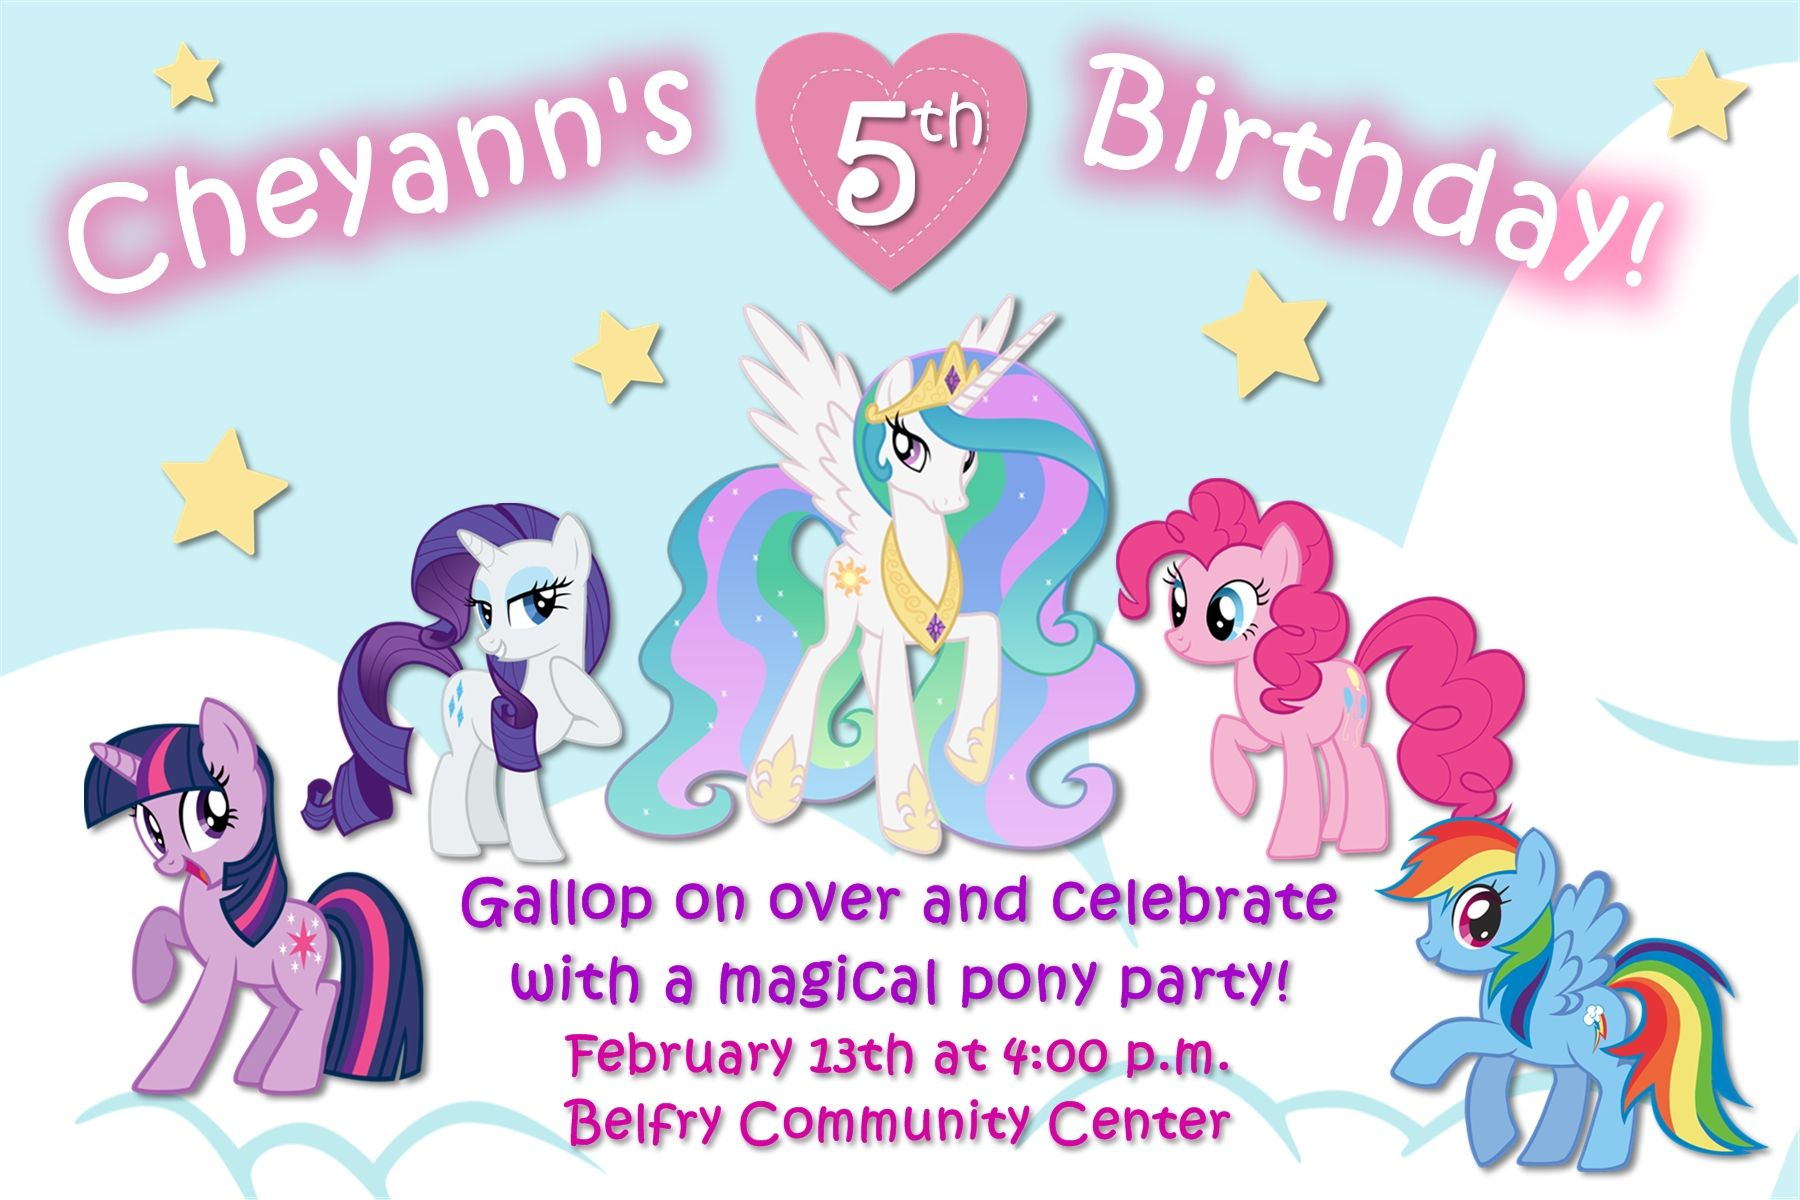 4x6 my little pony birthday invitation contact me via email 4x6 my little pony birthday invitation contact me via email aswiney01yahoo or stopboris Gallery